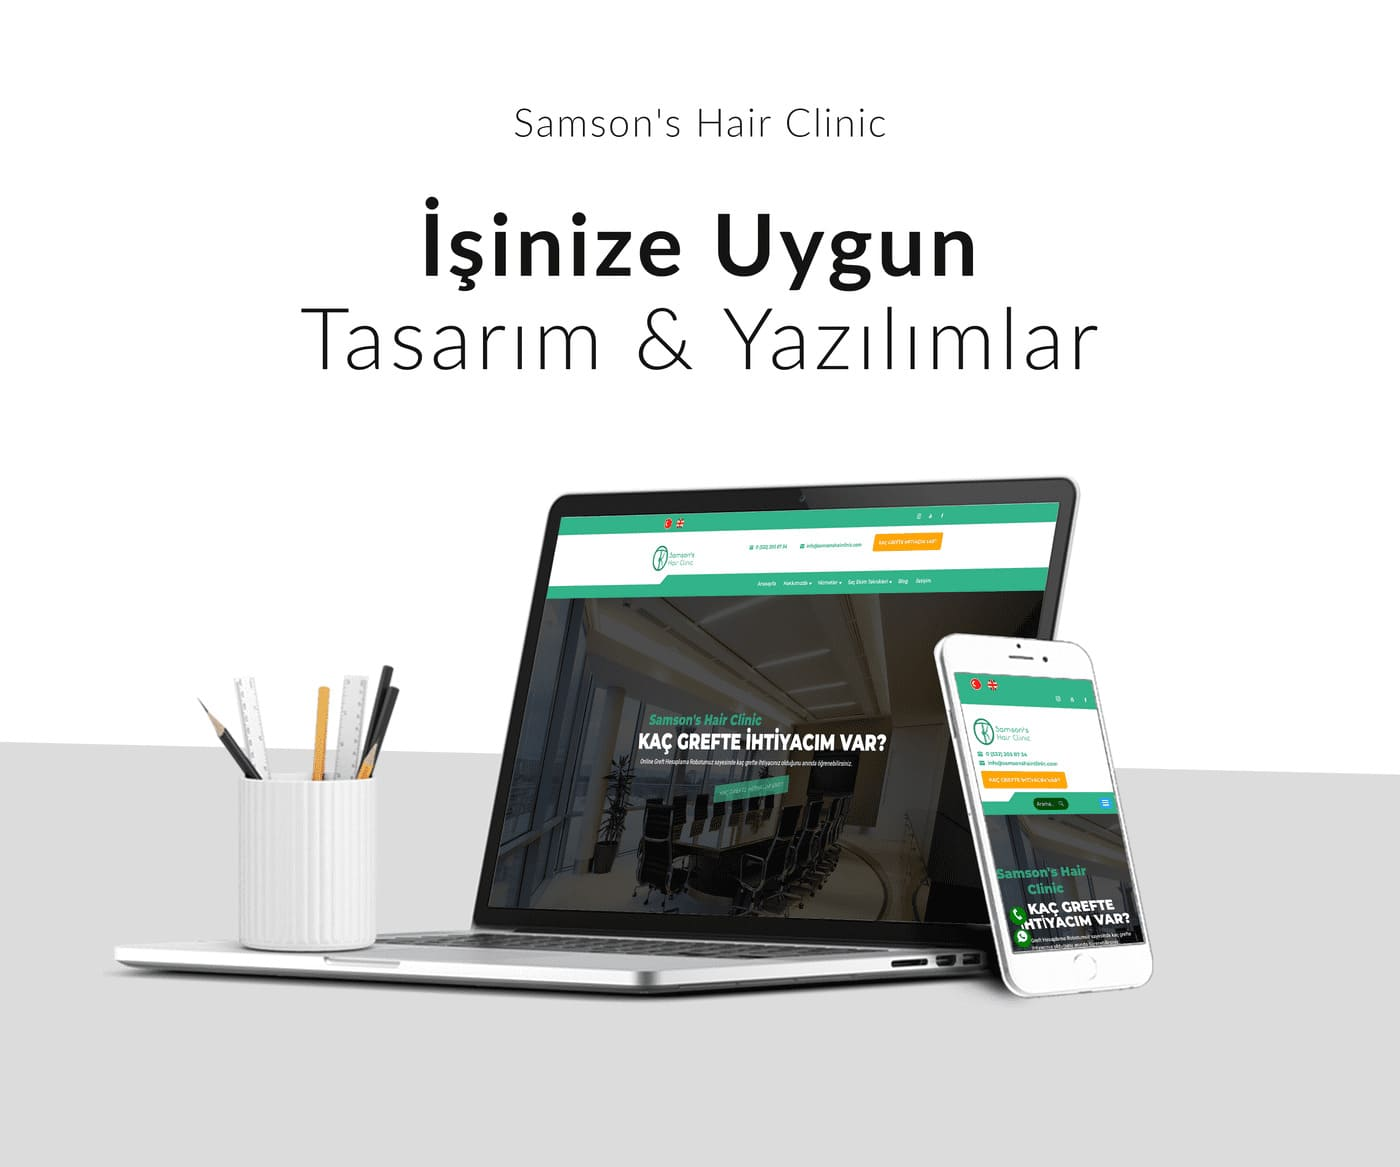 Samson's Hair Clinic